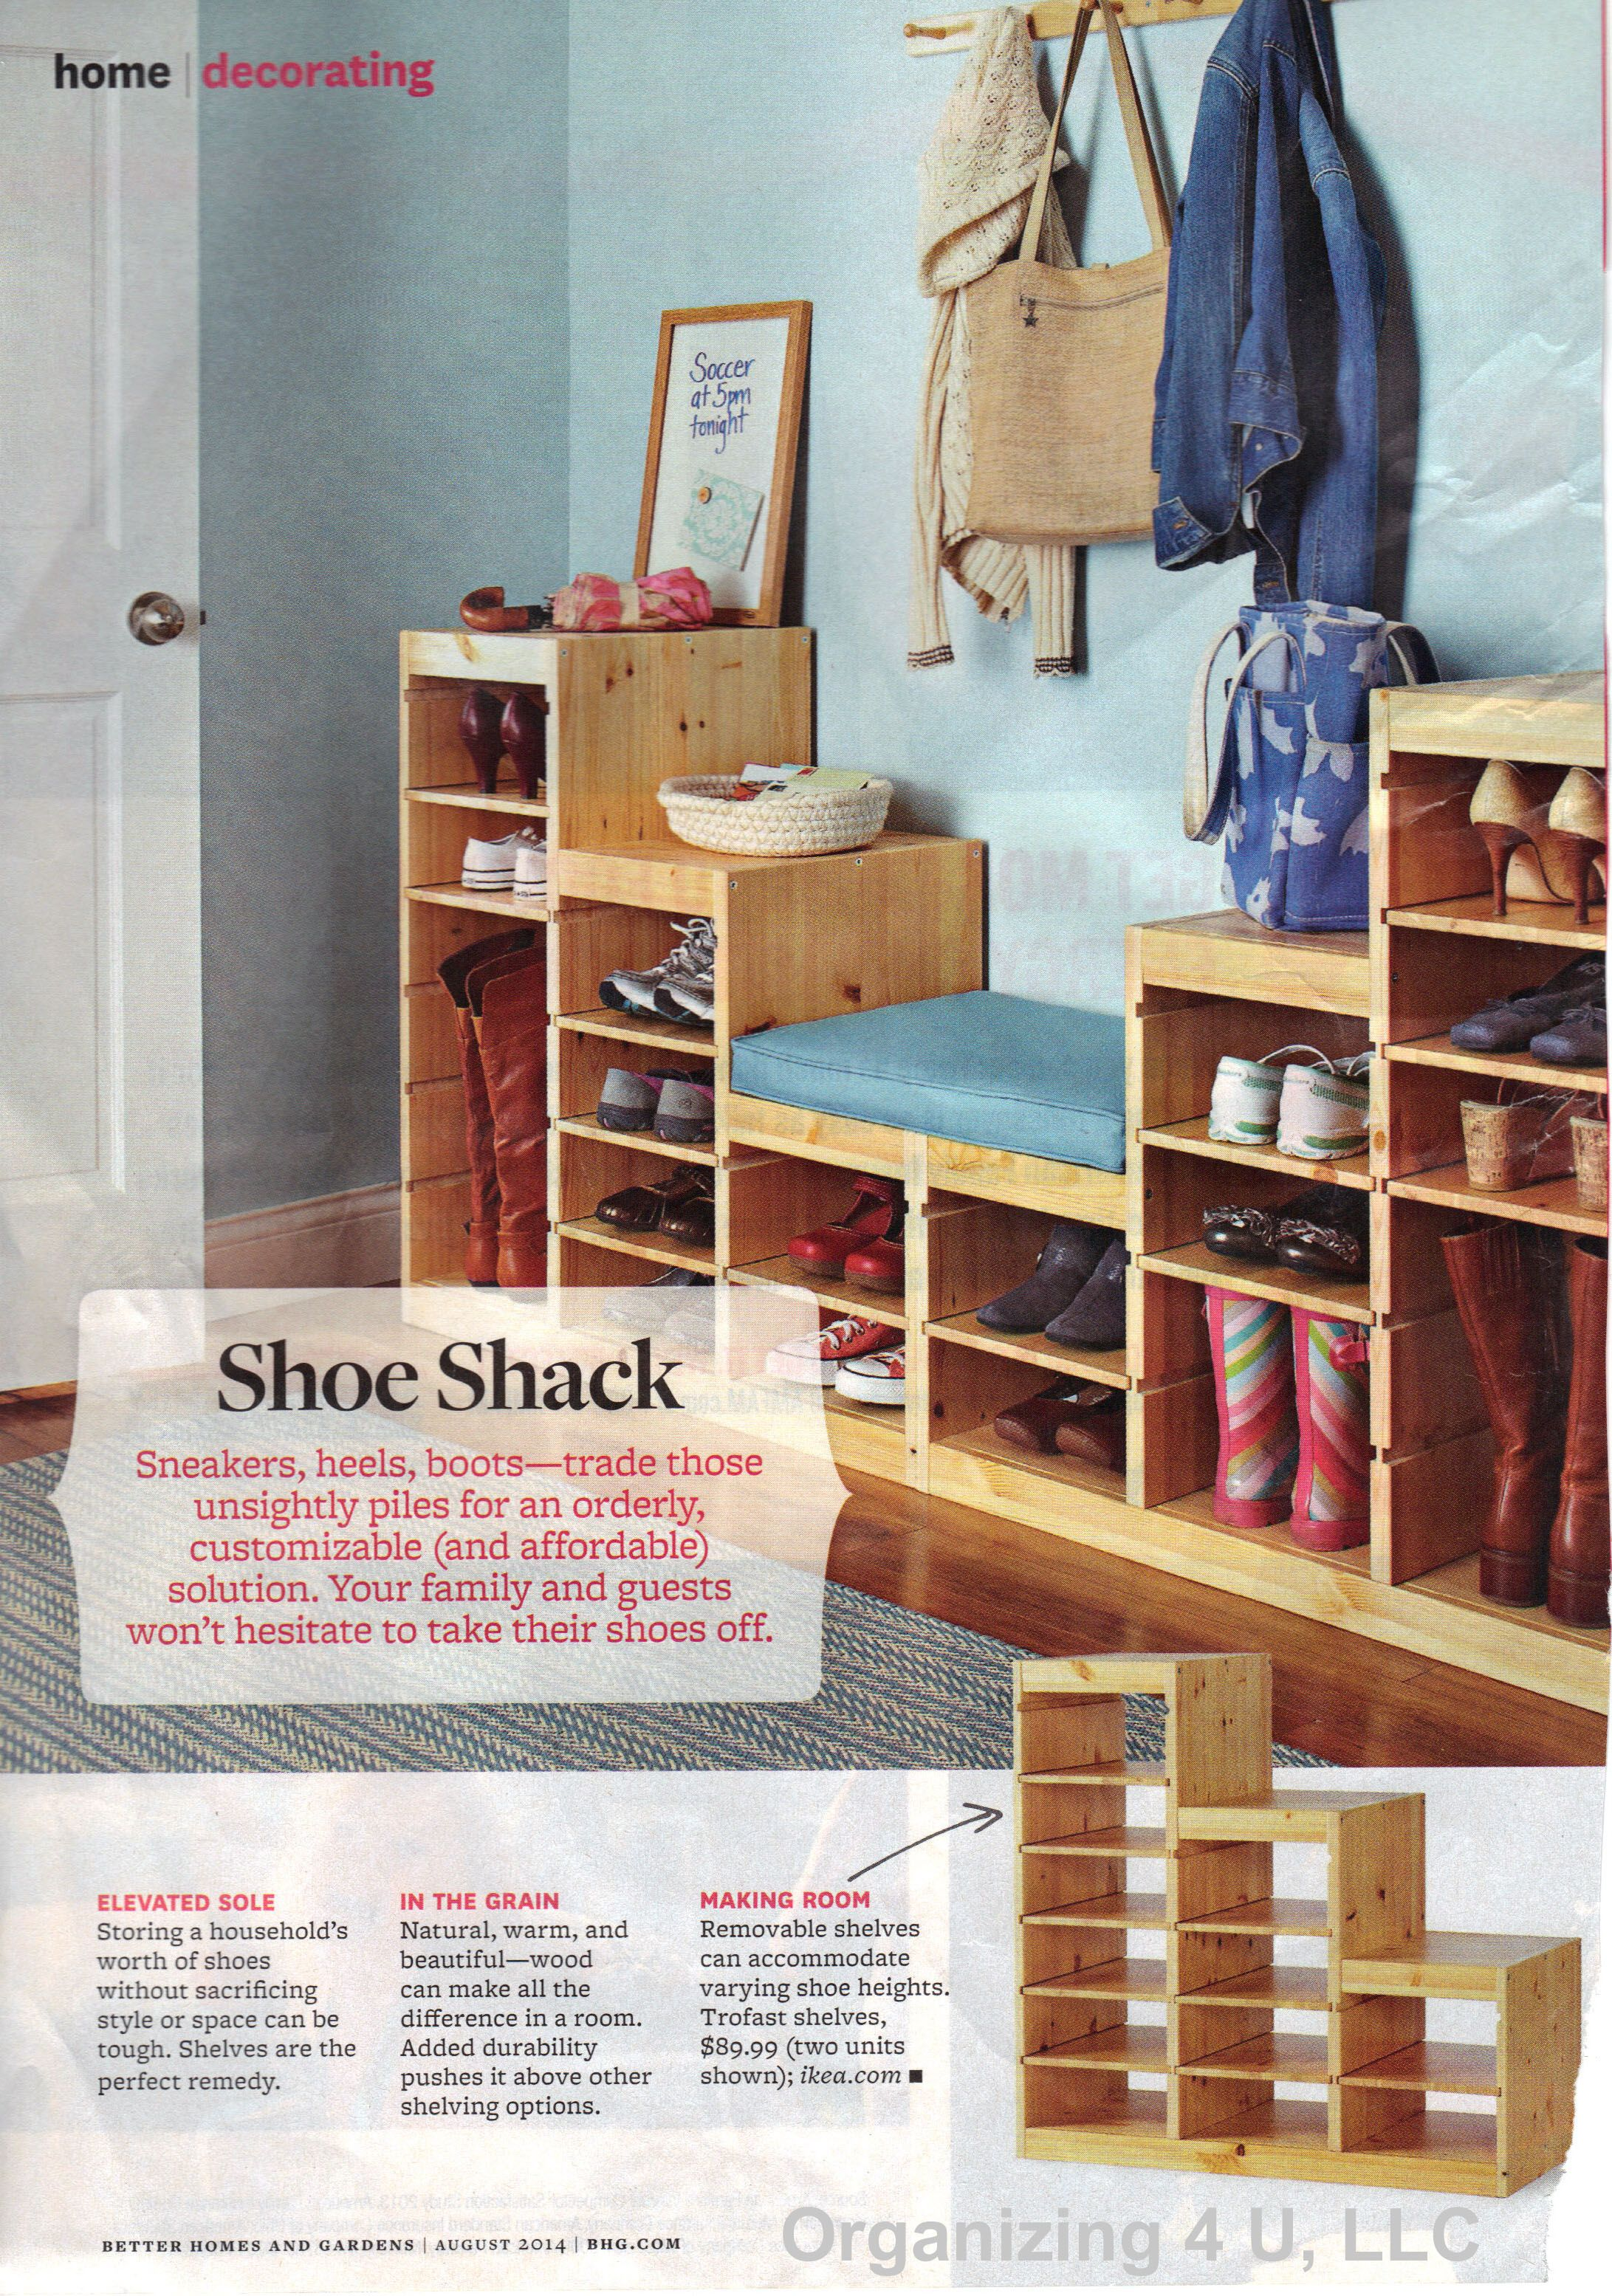 We found this system in the August 2014 issue of Better Homes & Gardens magazine, and thought it would also be good inspiration for a closet.